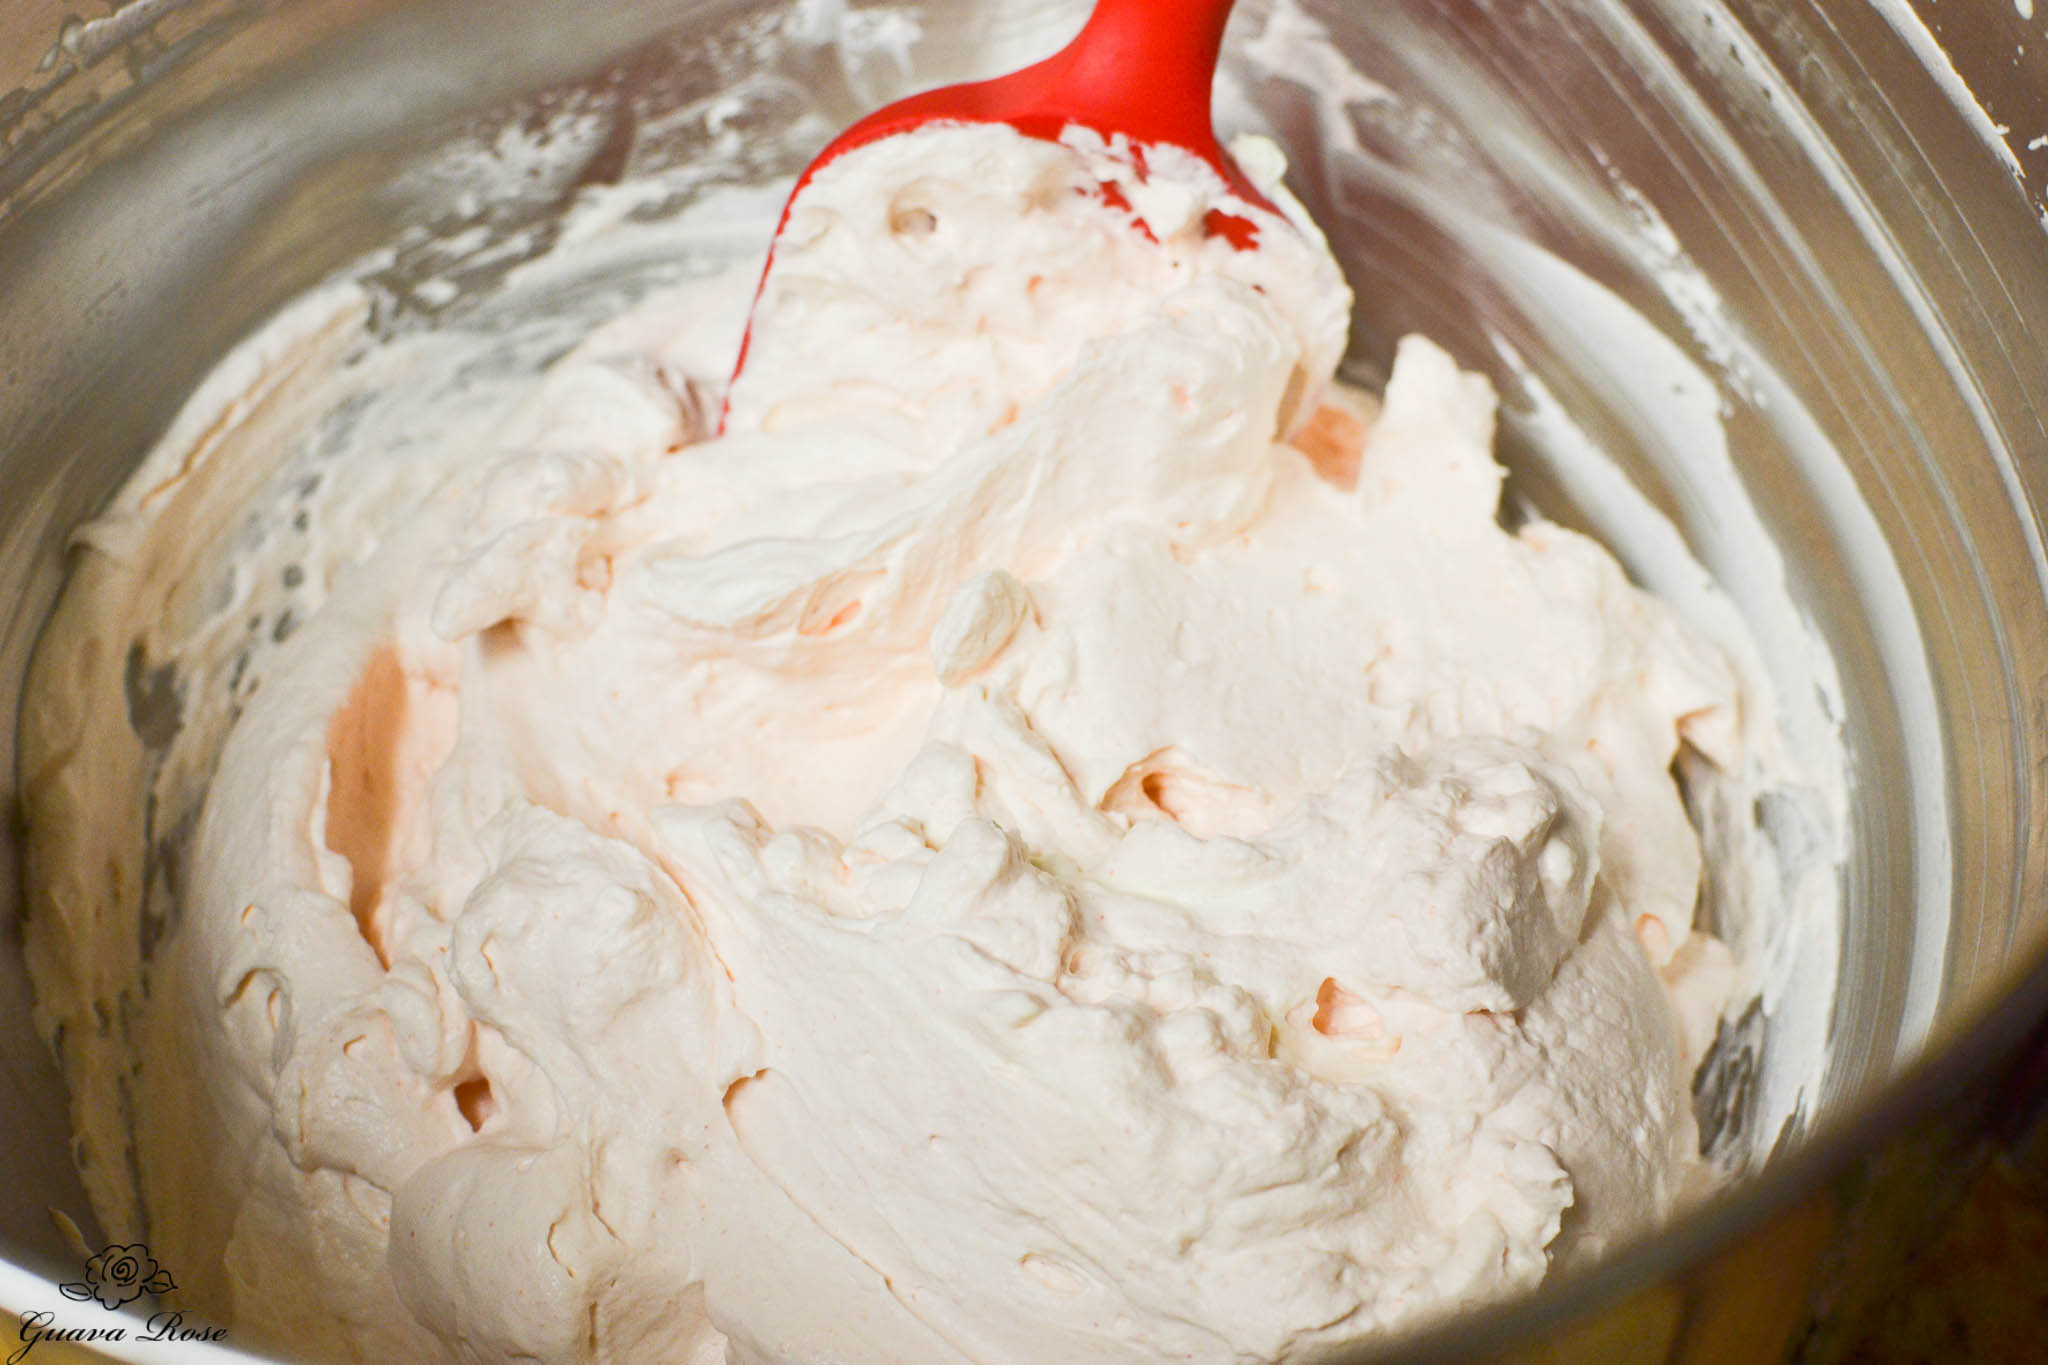 Guava whipped cream